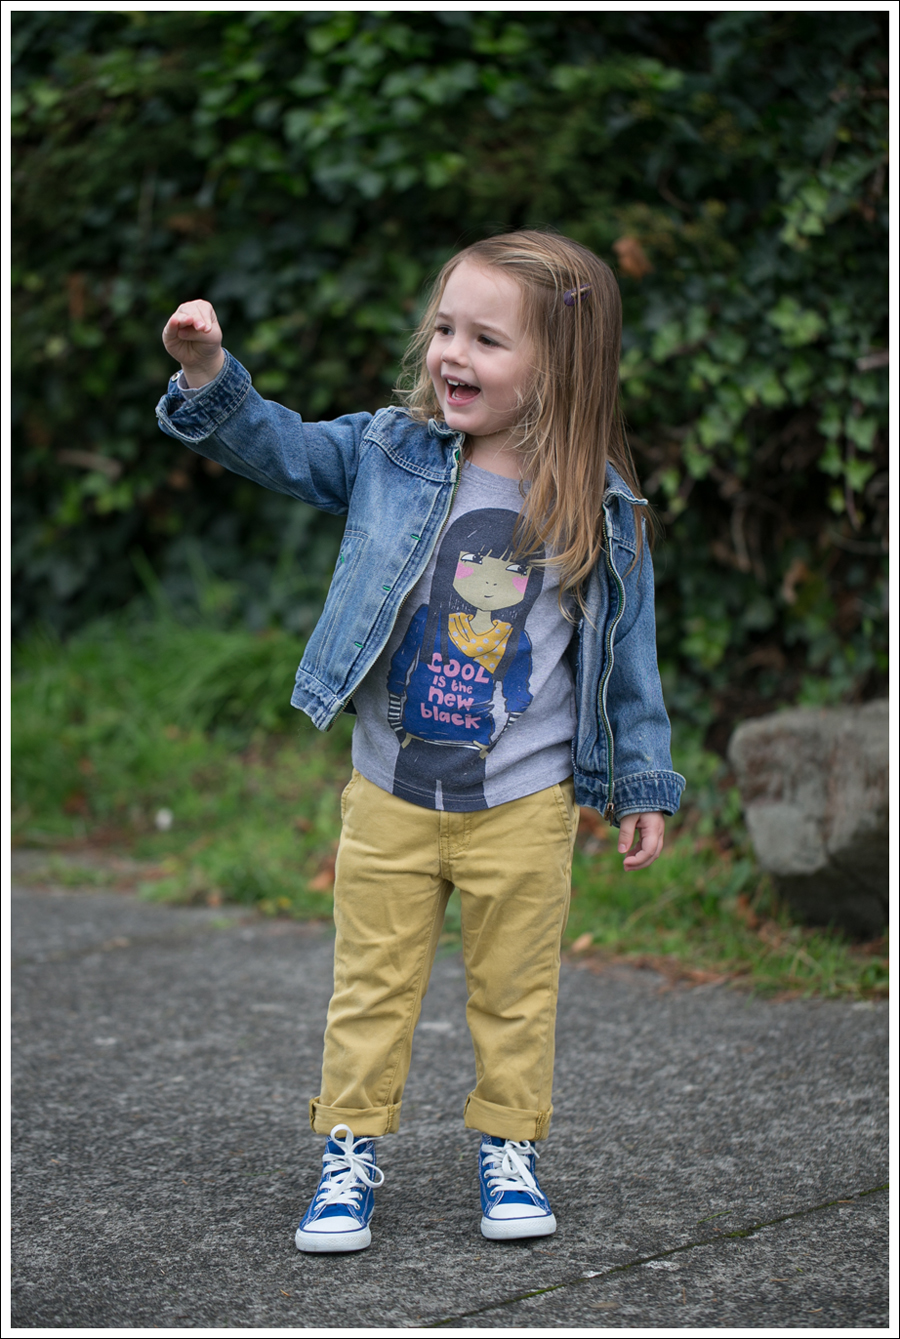 Blog Osh Kosh Jean Jacket Mini Boden Cool Tee 7FAM mustard jeans Blue Toddler Converse Hight Tops-1